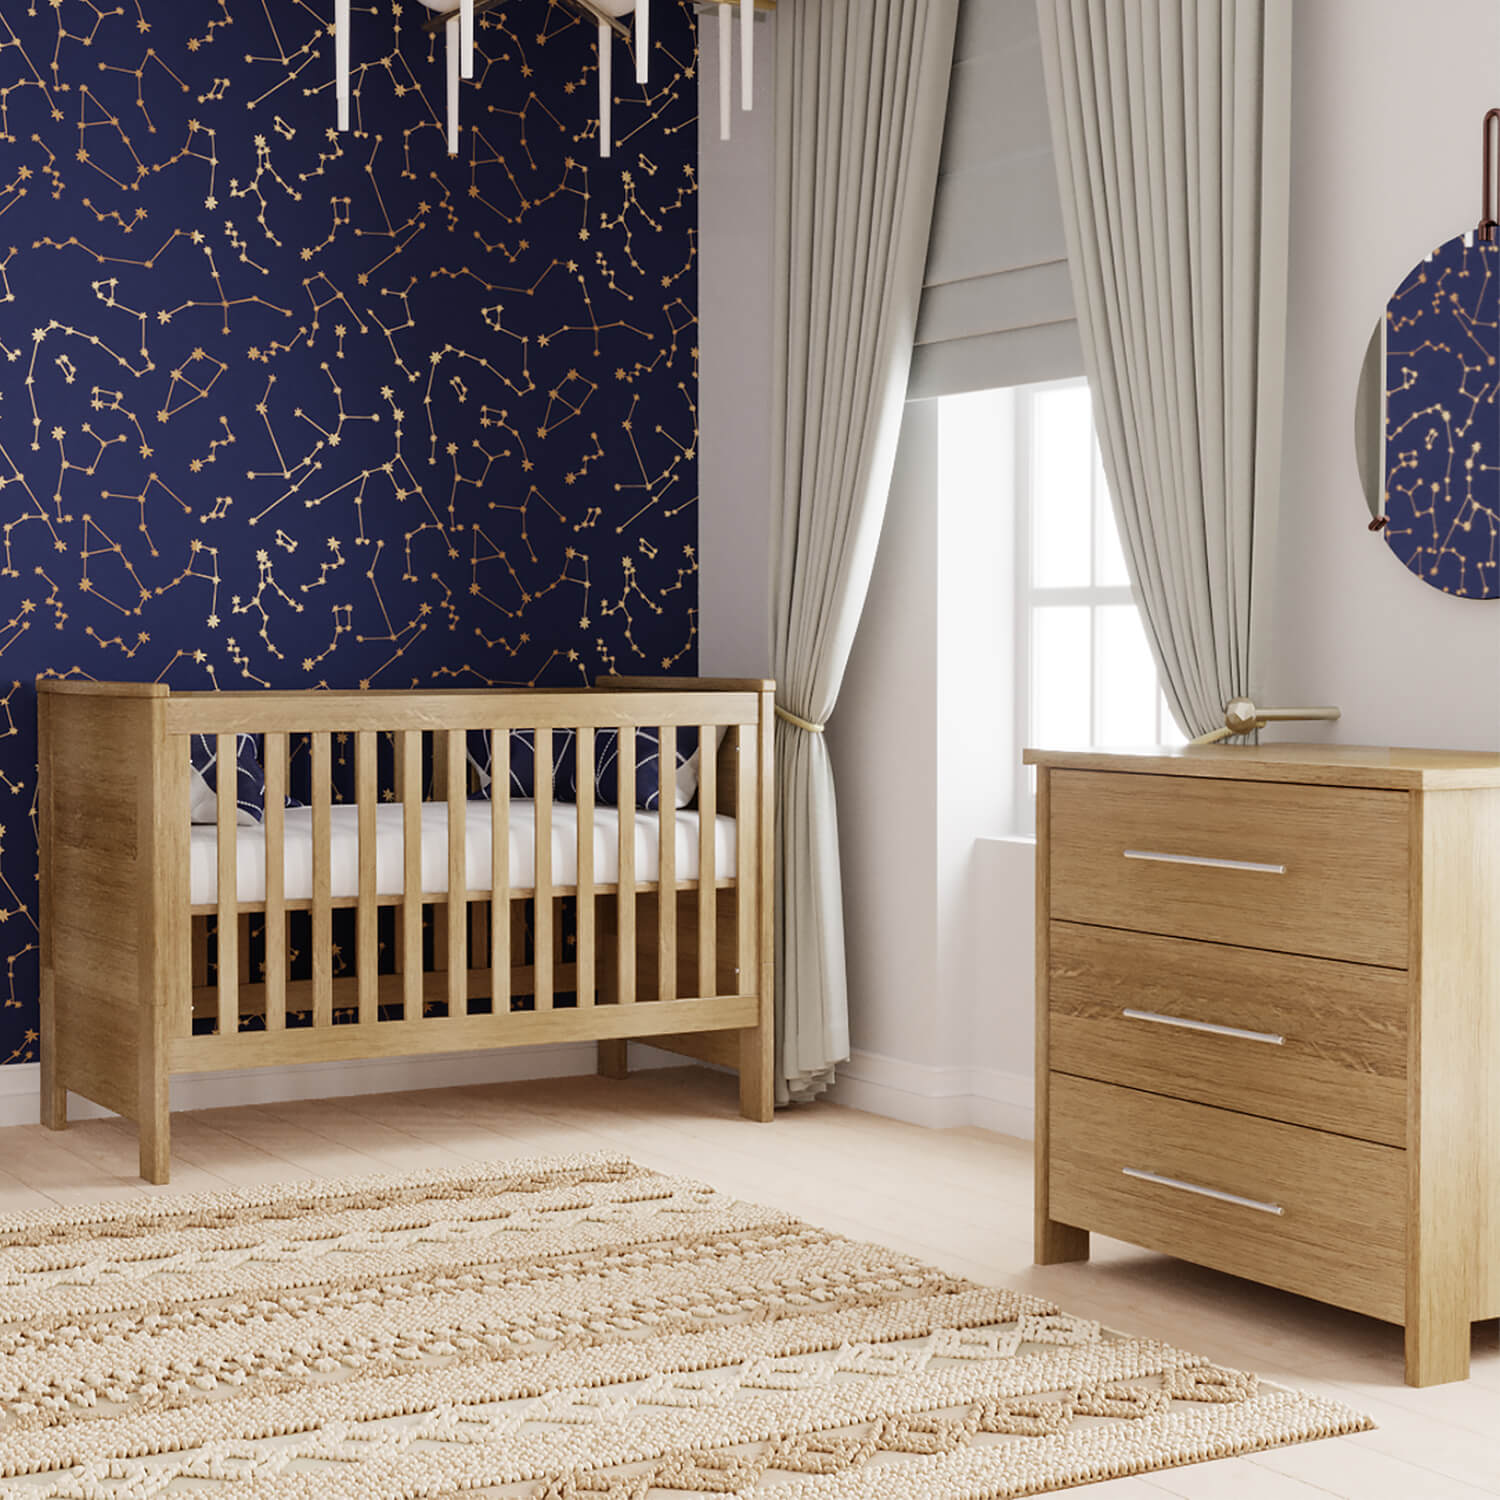 Oakland Collection Bundle: Crib & Dresser